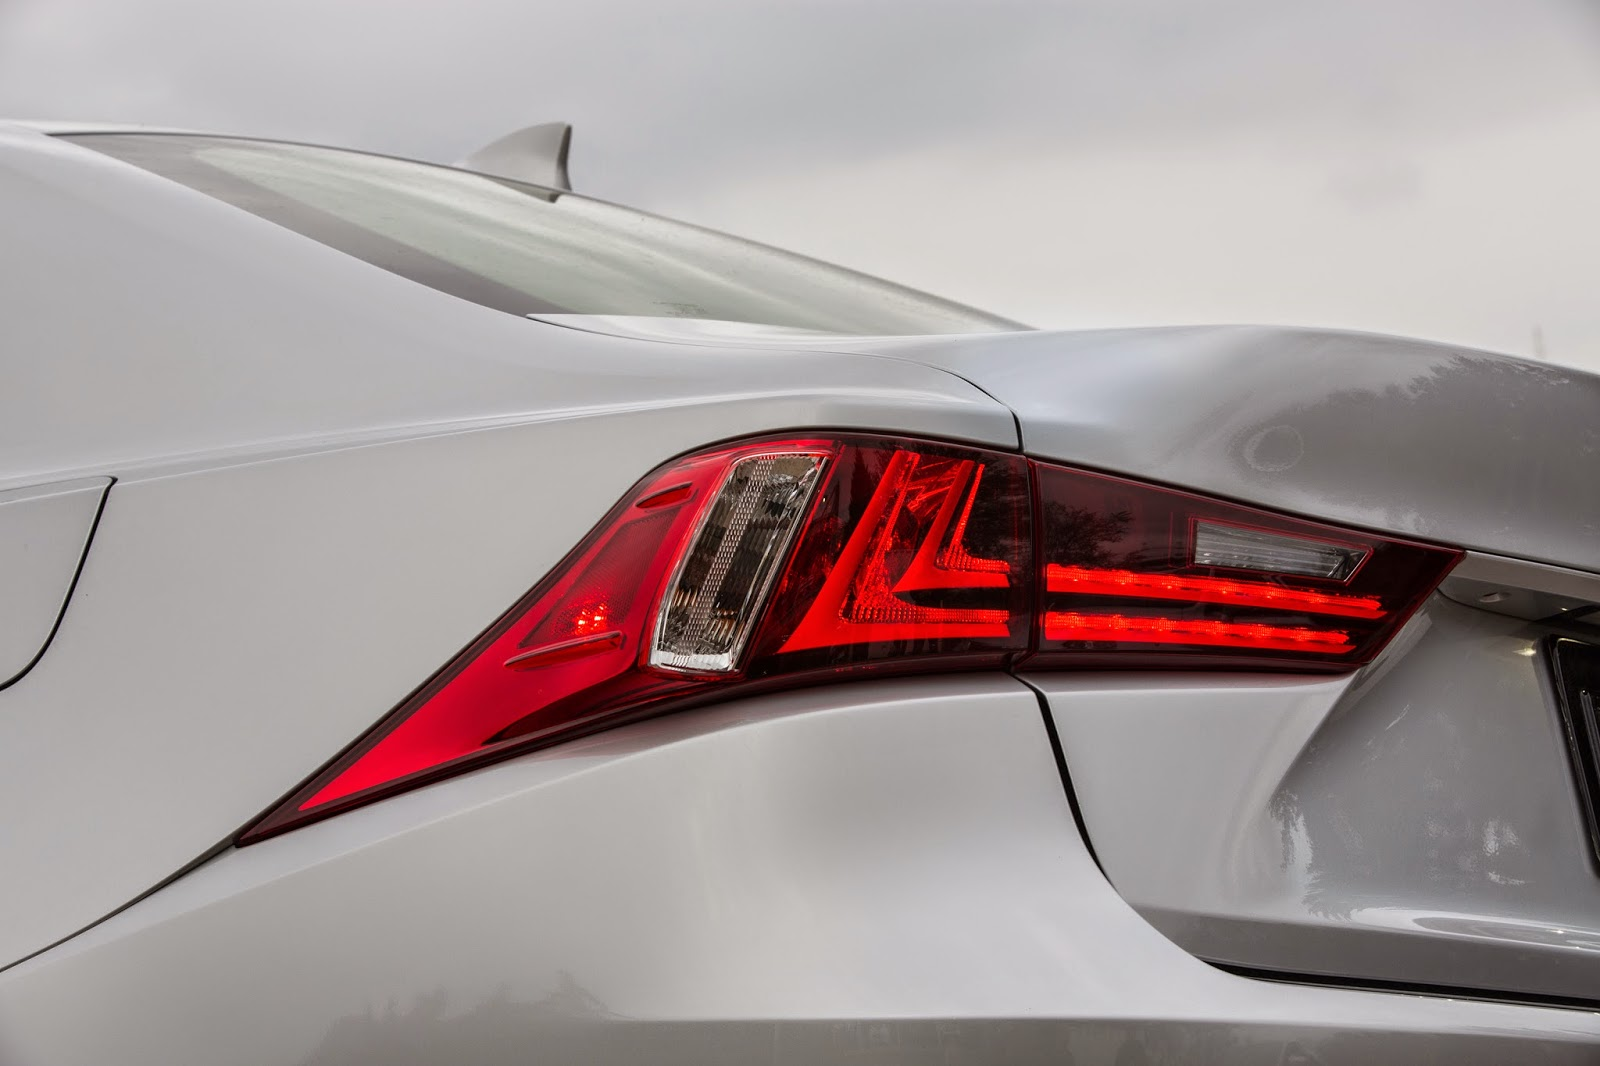 2015 Lexus IS 250 taillight detail